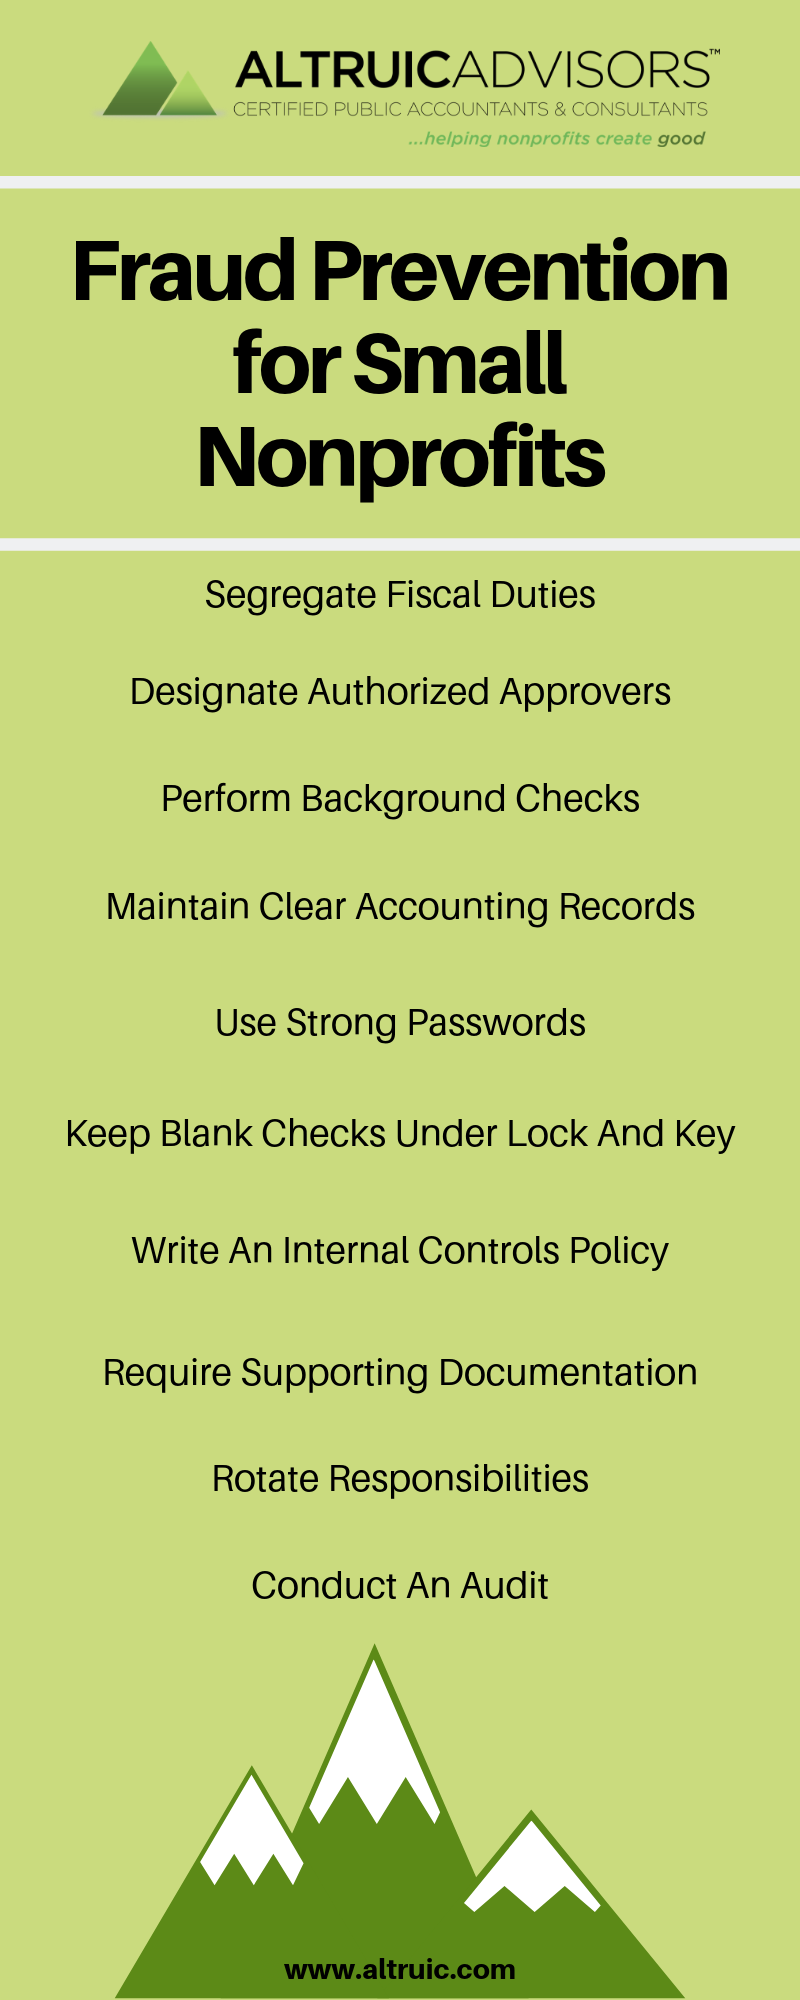 fraud-prevention-for-small-nonprofits.png